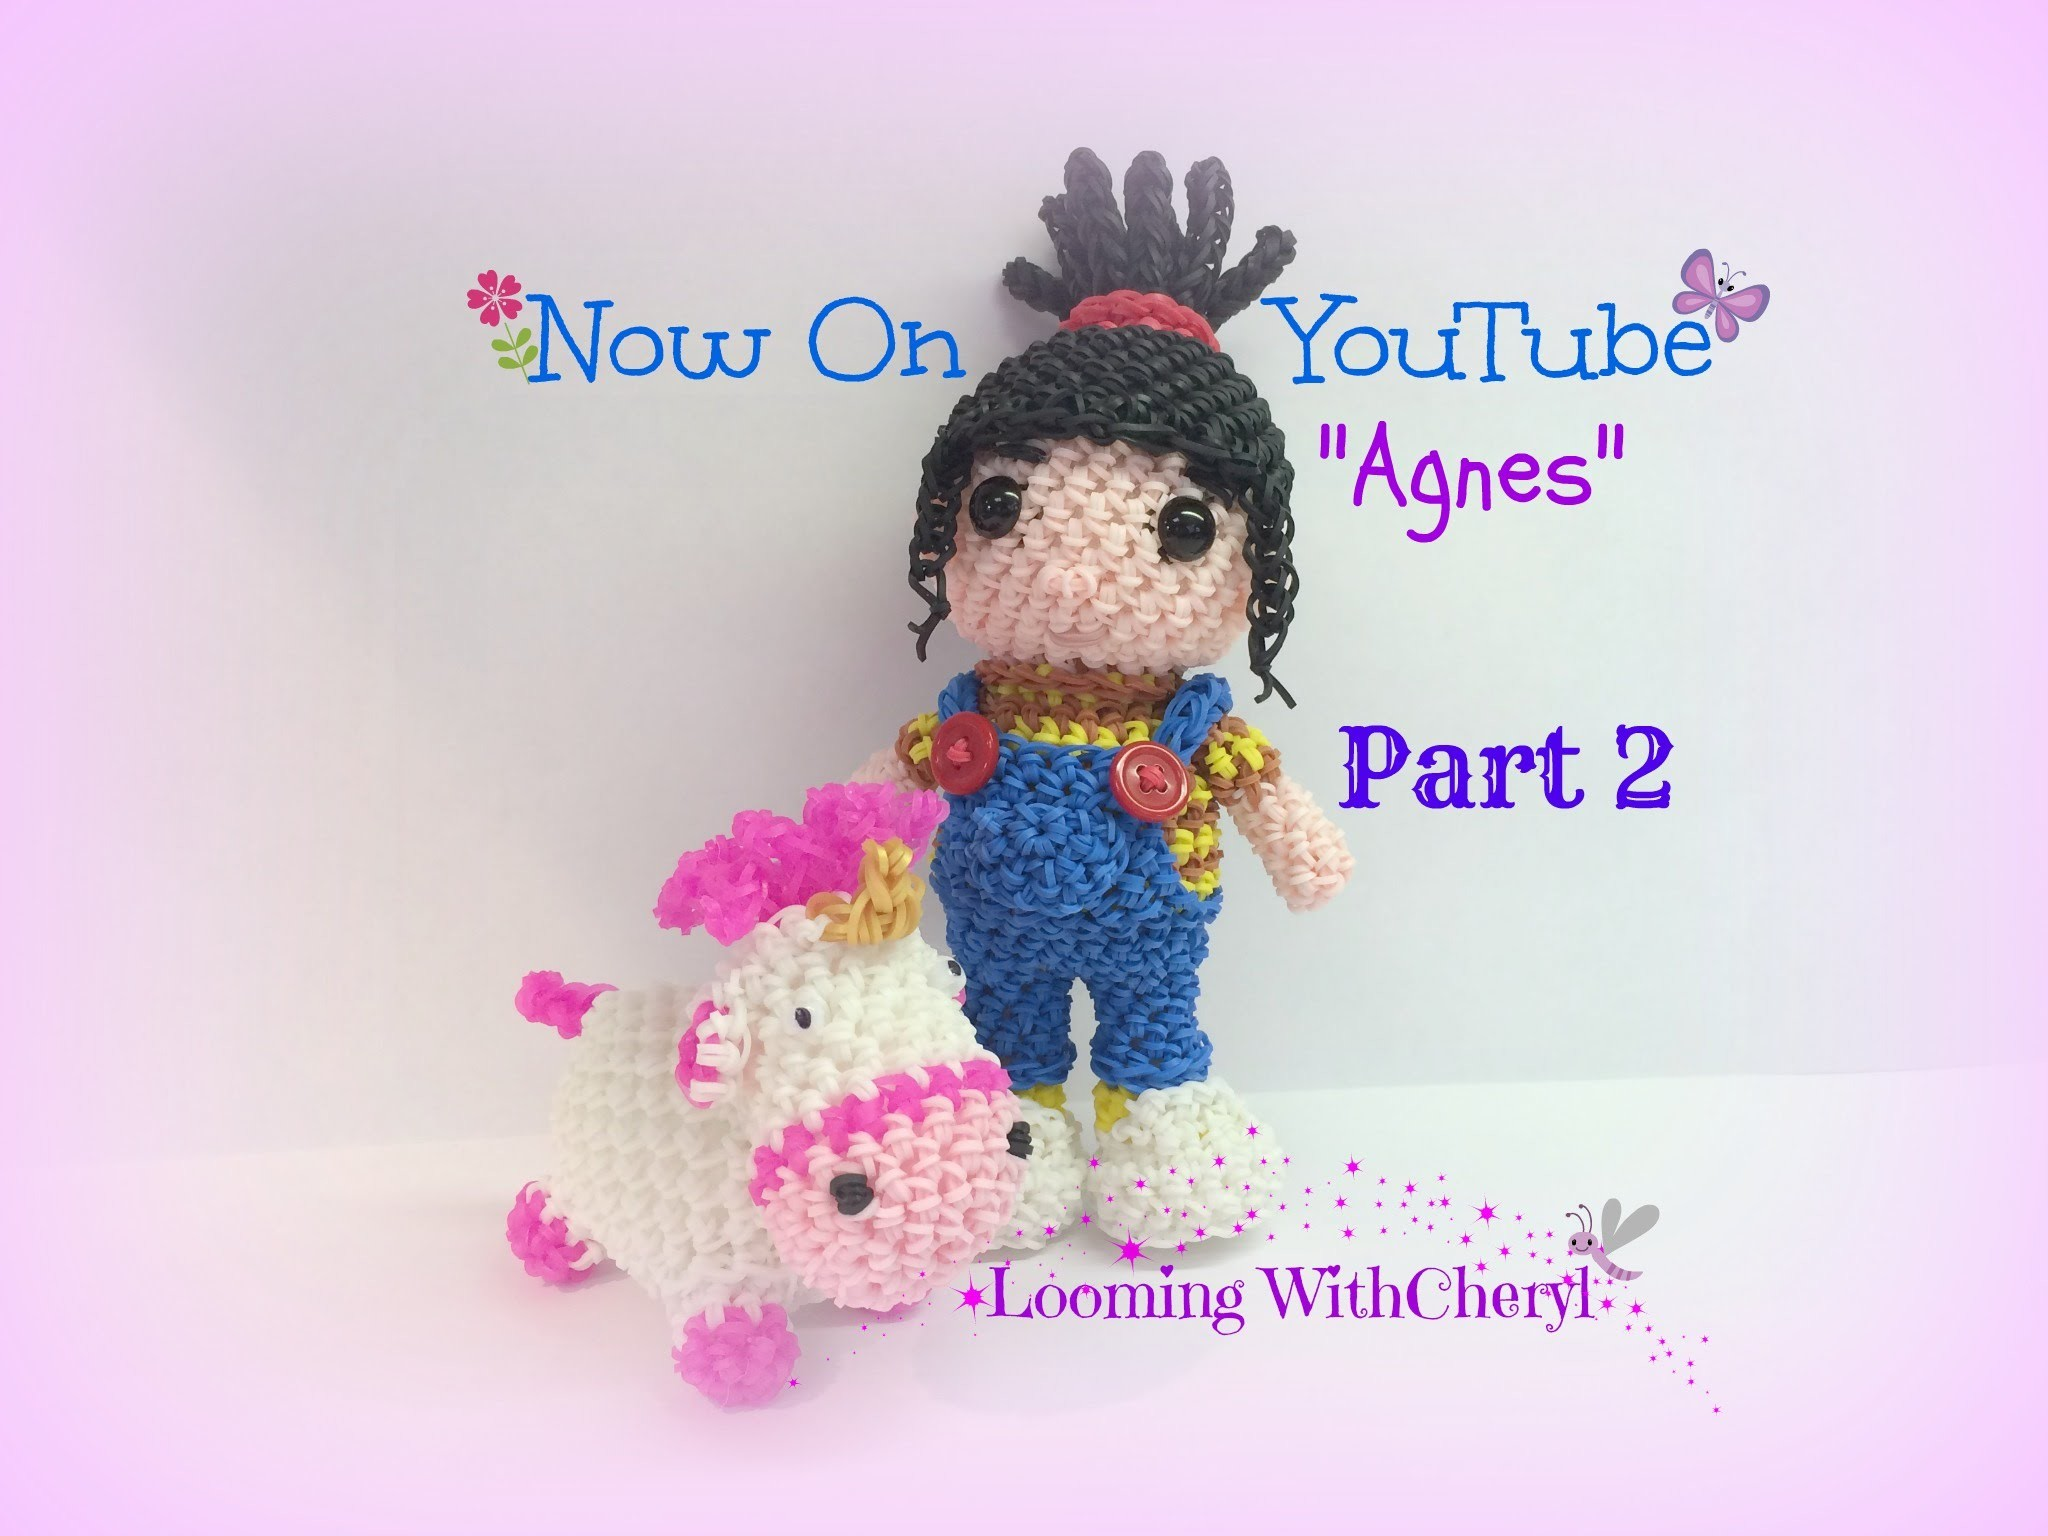 Rainbow Loom Agnes Doll Part 2 of 2 - Loomigurumi. Amigurumi Hook Only